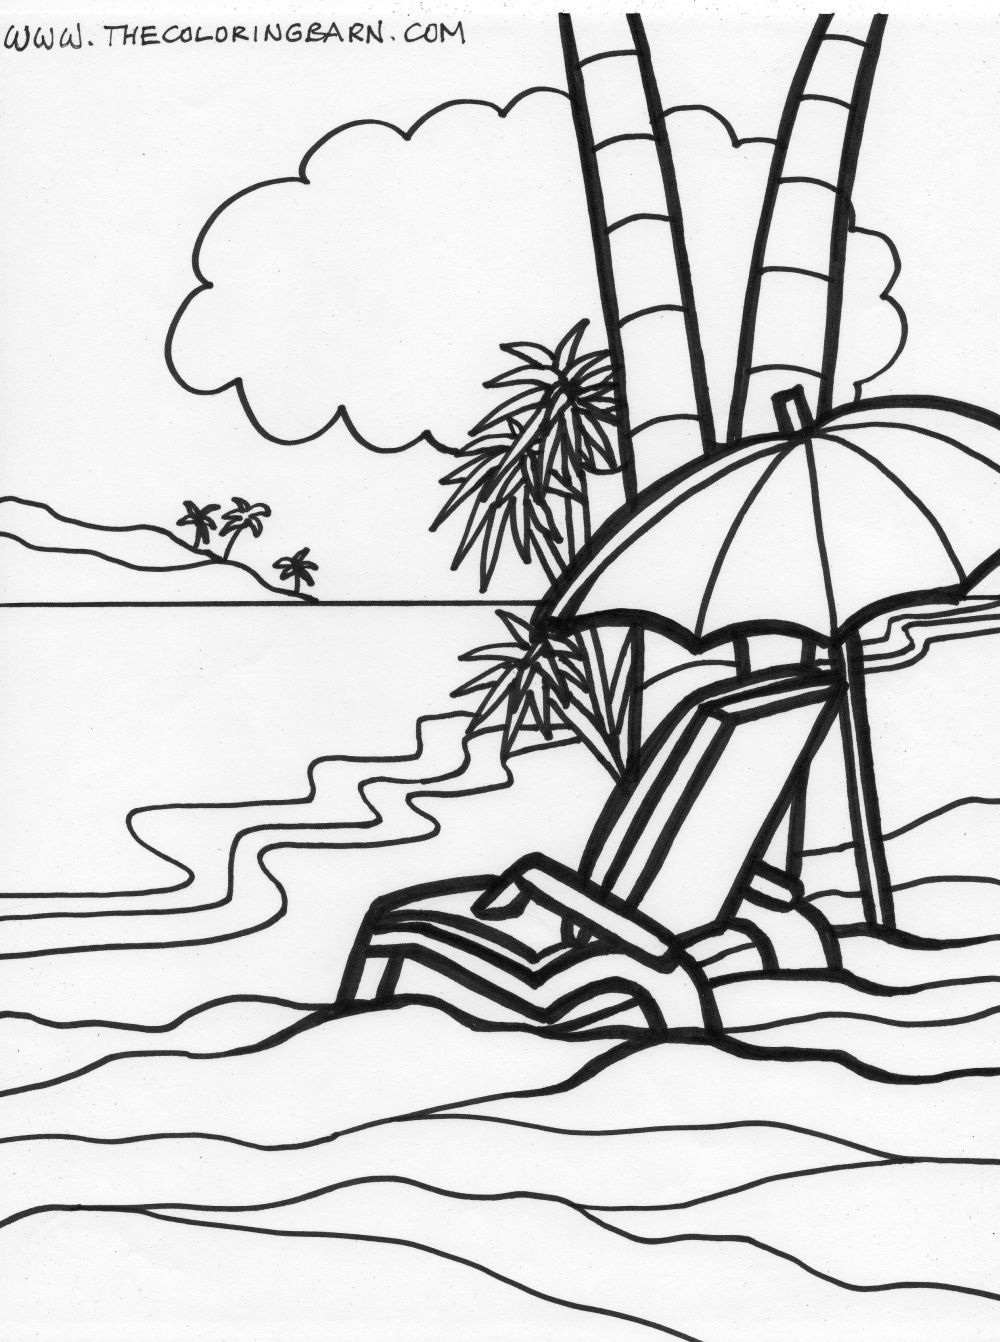 Island Coloring Pages Free The Coloring Barn Beach Coloring Pages Coloring Pages Summer Coloring Pages